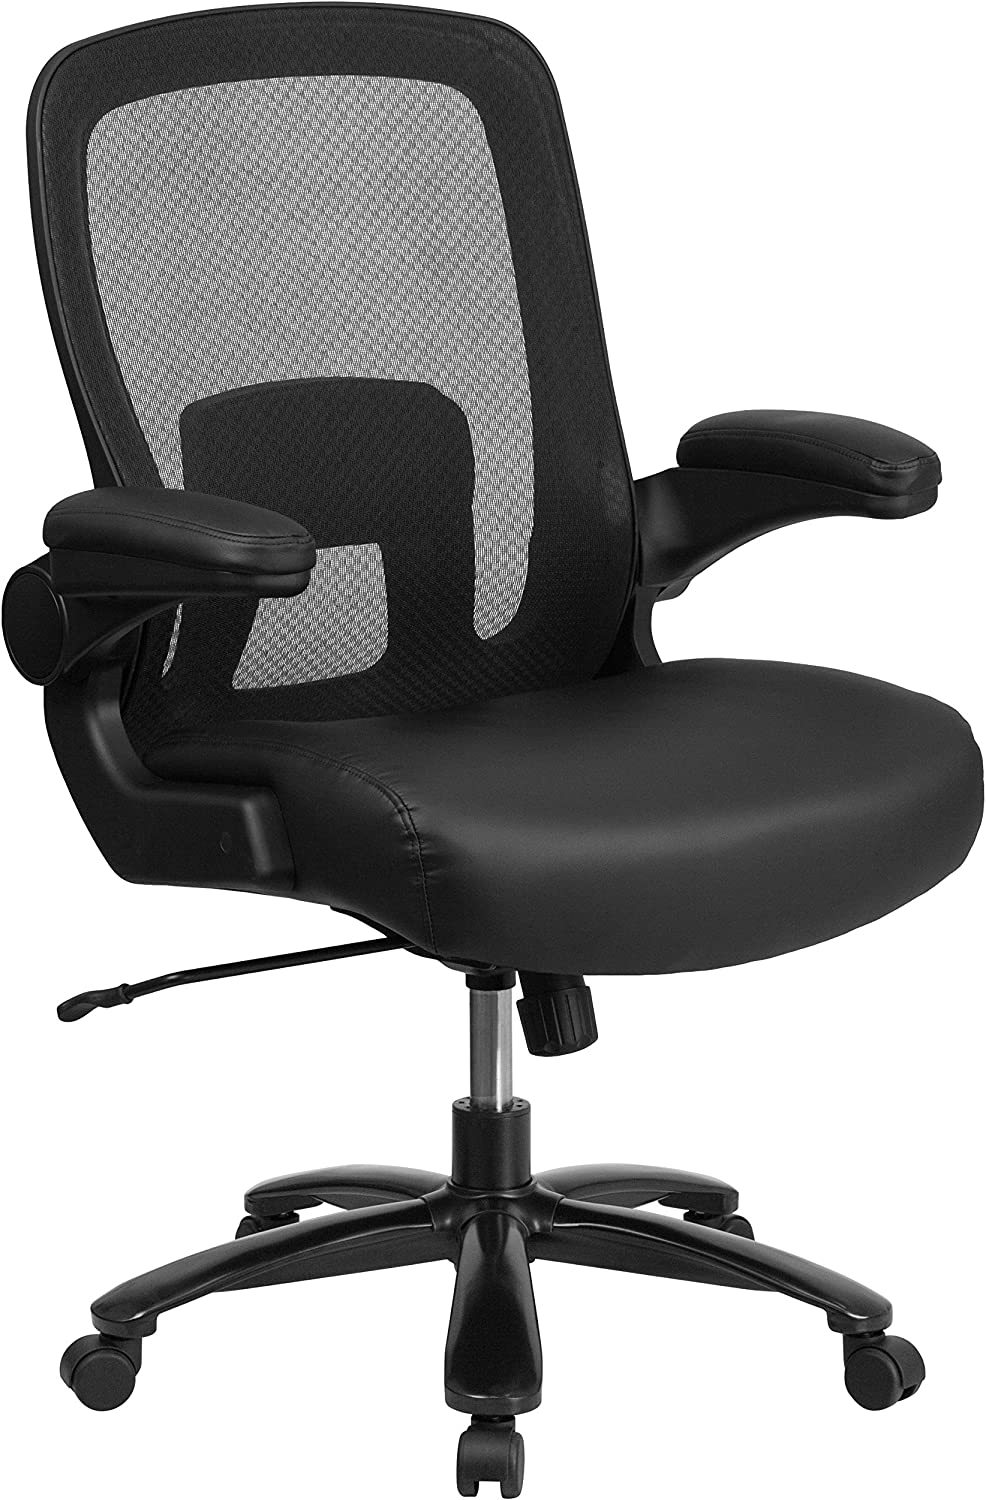 Flash Furniture HERCULES Series Big & Tall 500 lb. Rated Black Mesh/Leather Executive Ergonomic Office Chair with Adjustable Lumbar